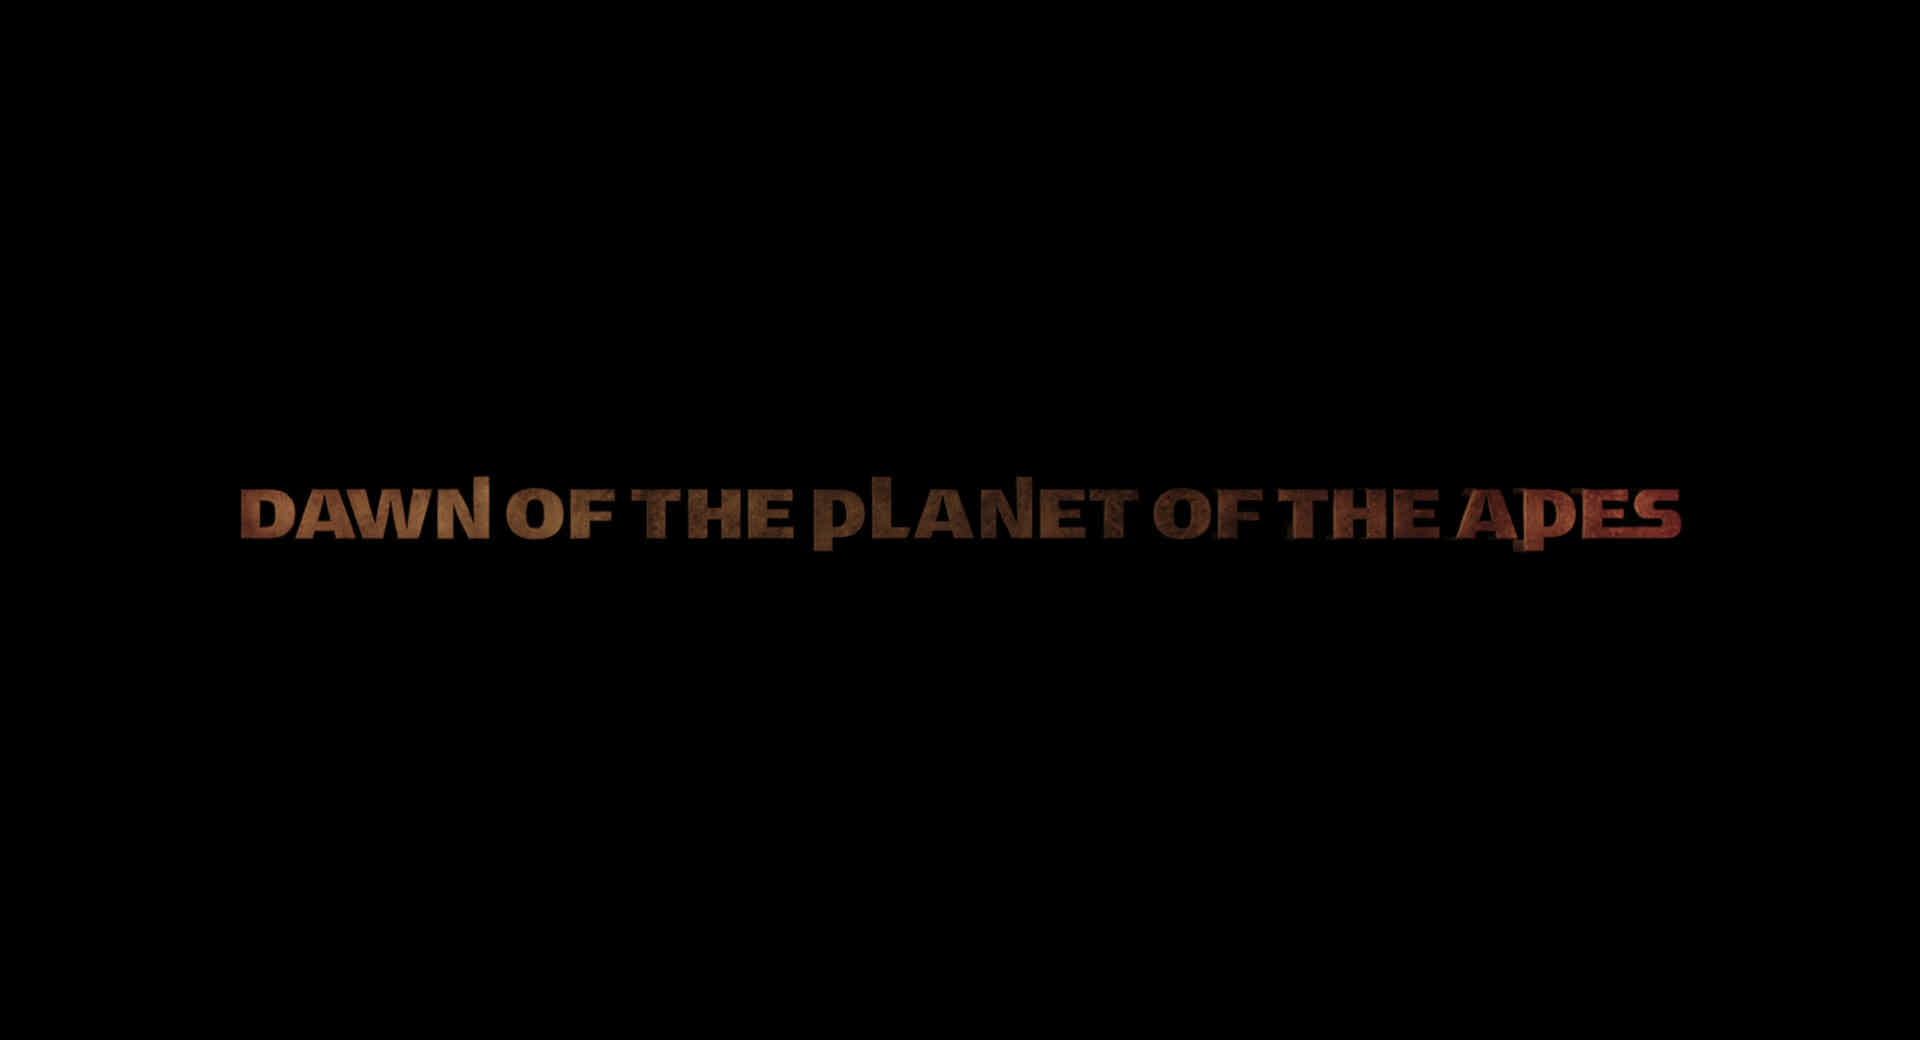 dawn of the planet of the apes (2014) - hd 1080p